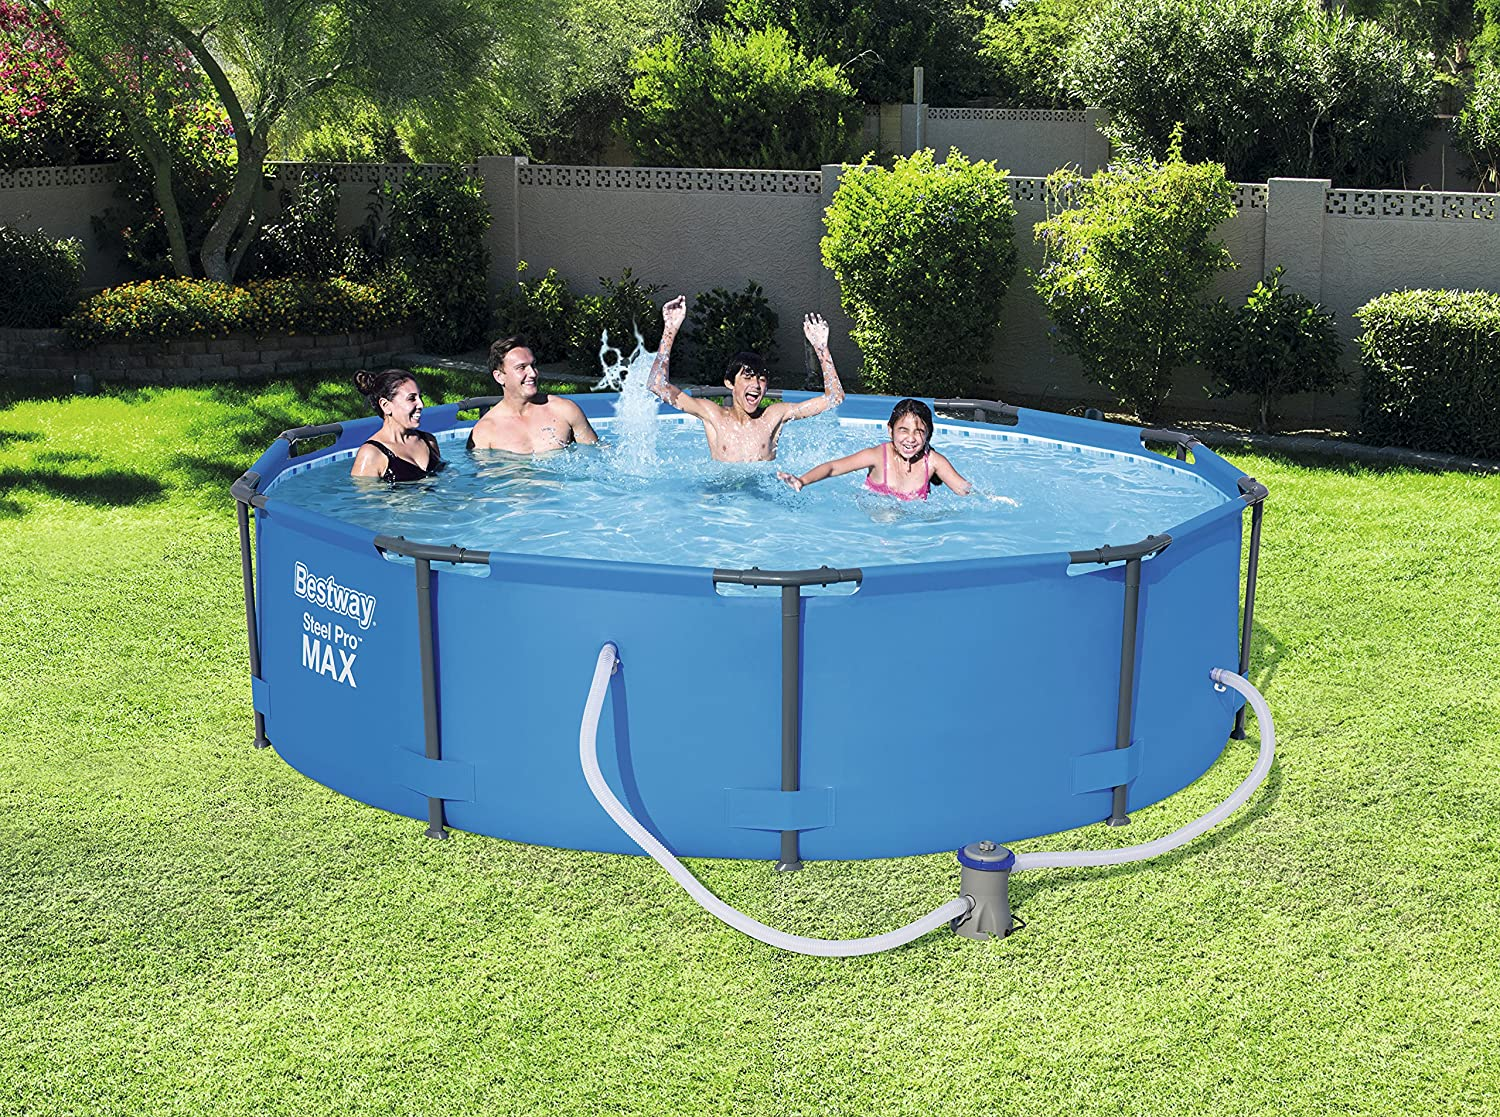 Bestway 10ft x 30 inch Steel Pro Max Frame Pool Set With Filter Pump ...